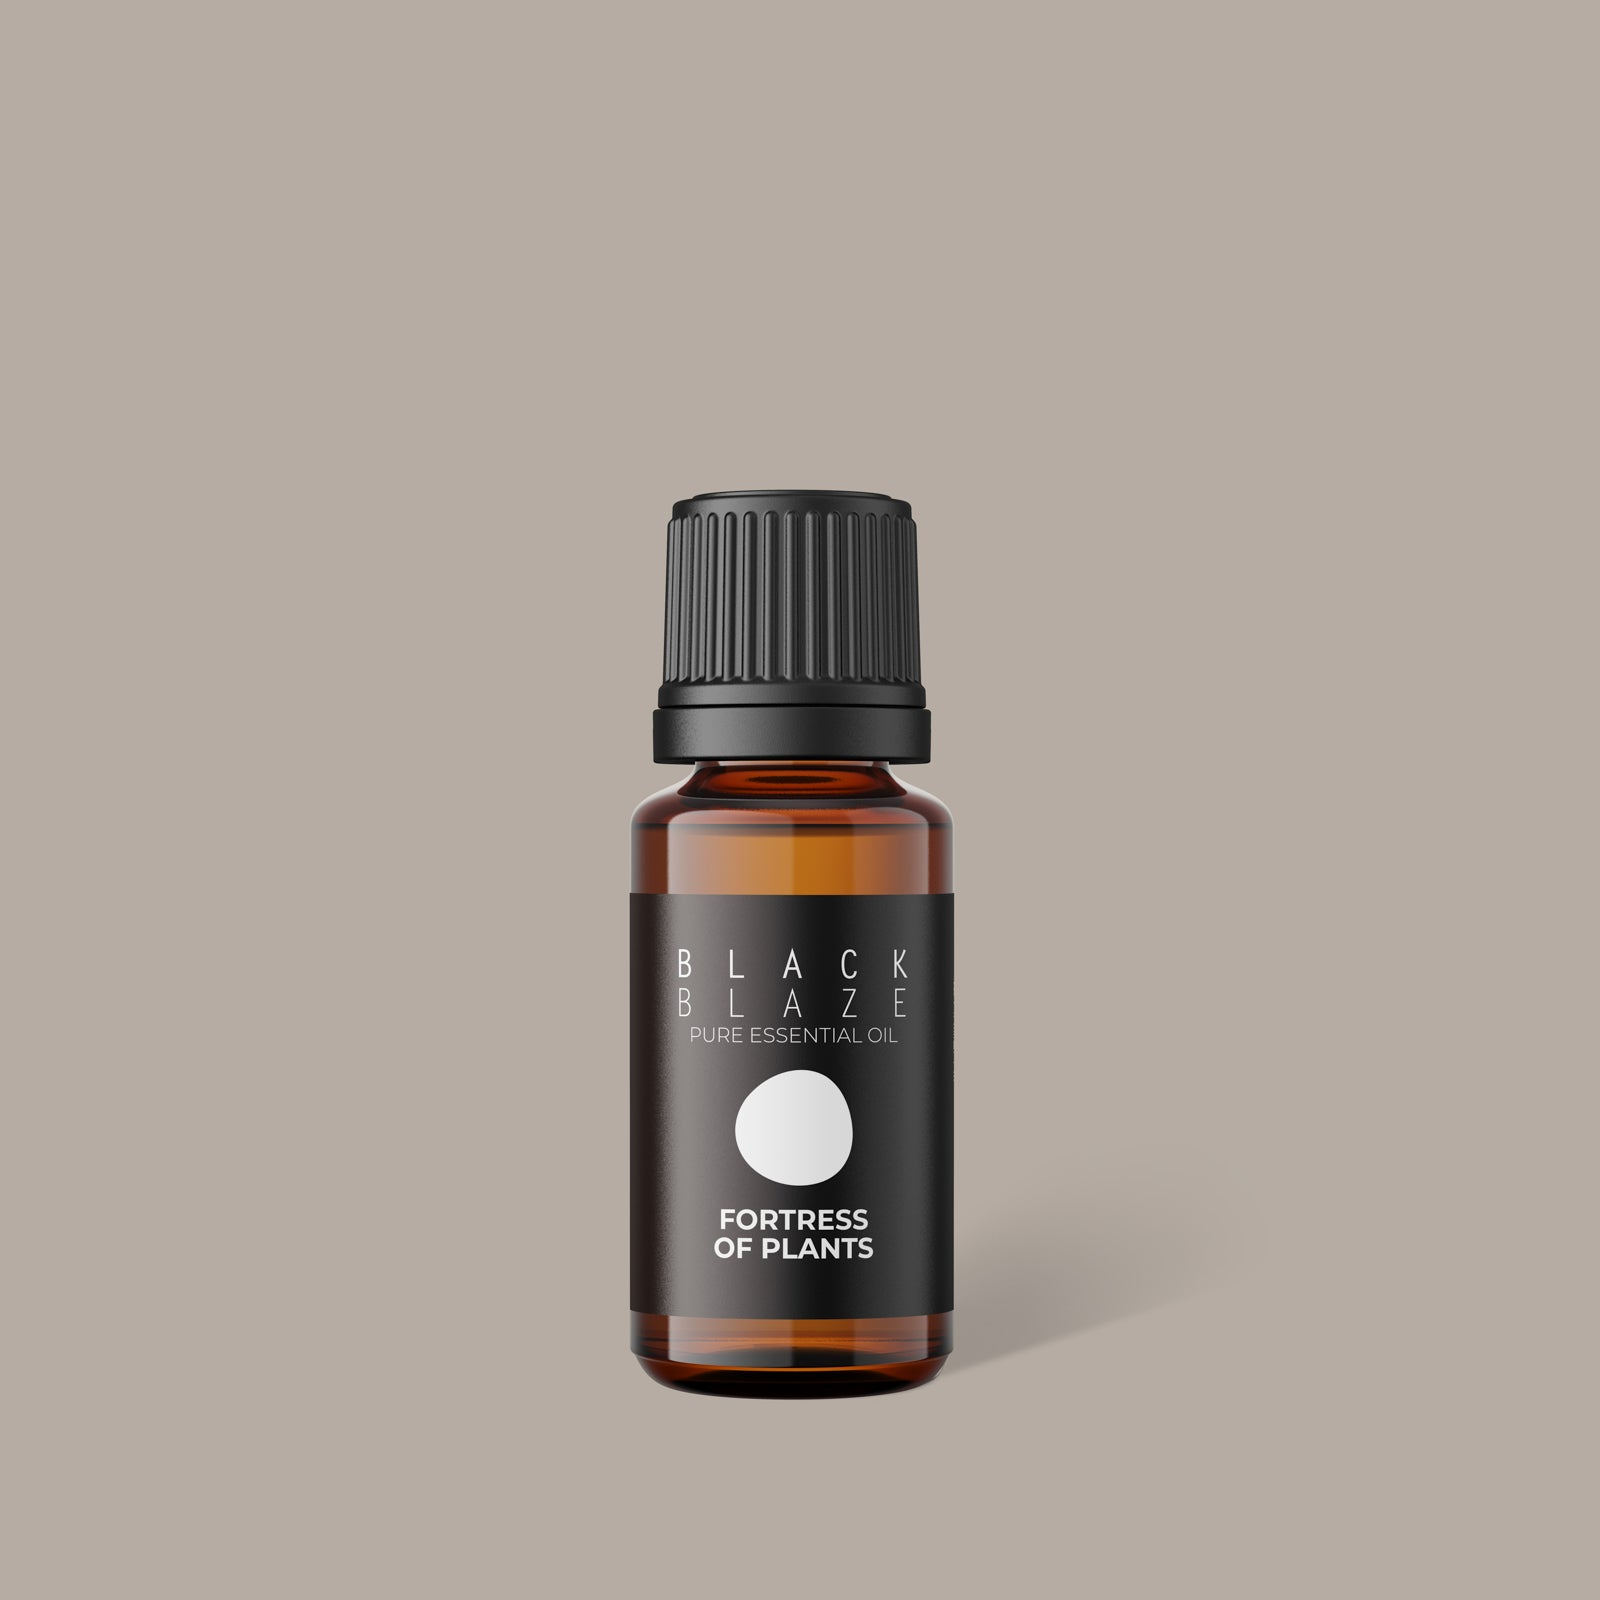 Fortress of Plants Essential Oil